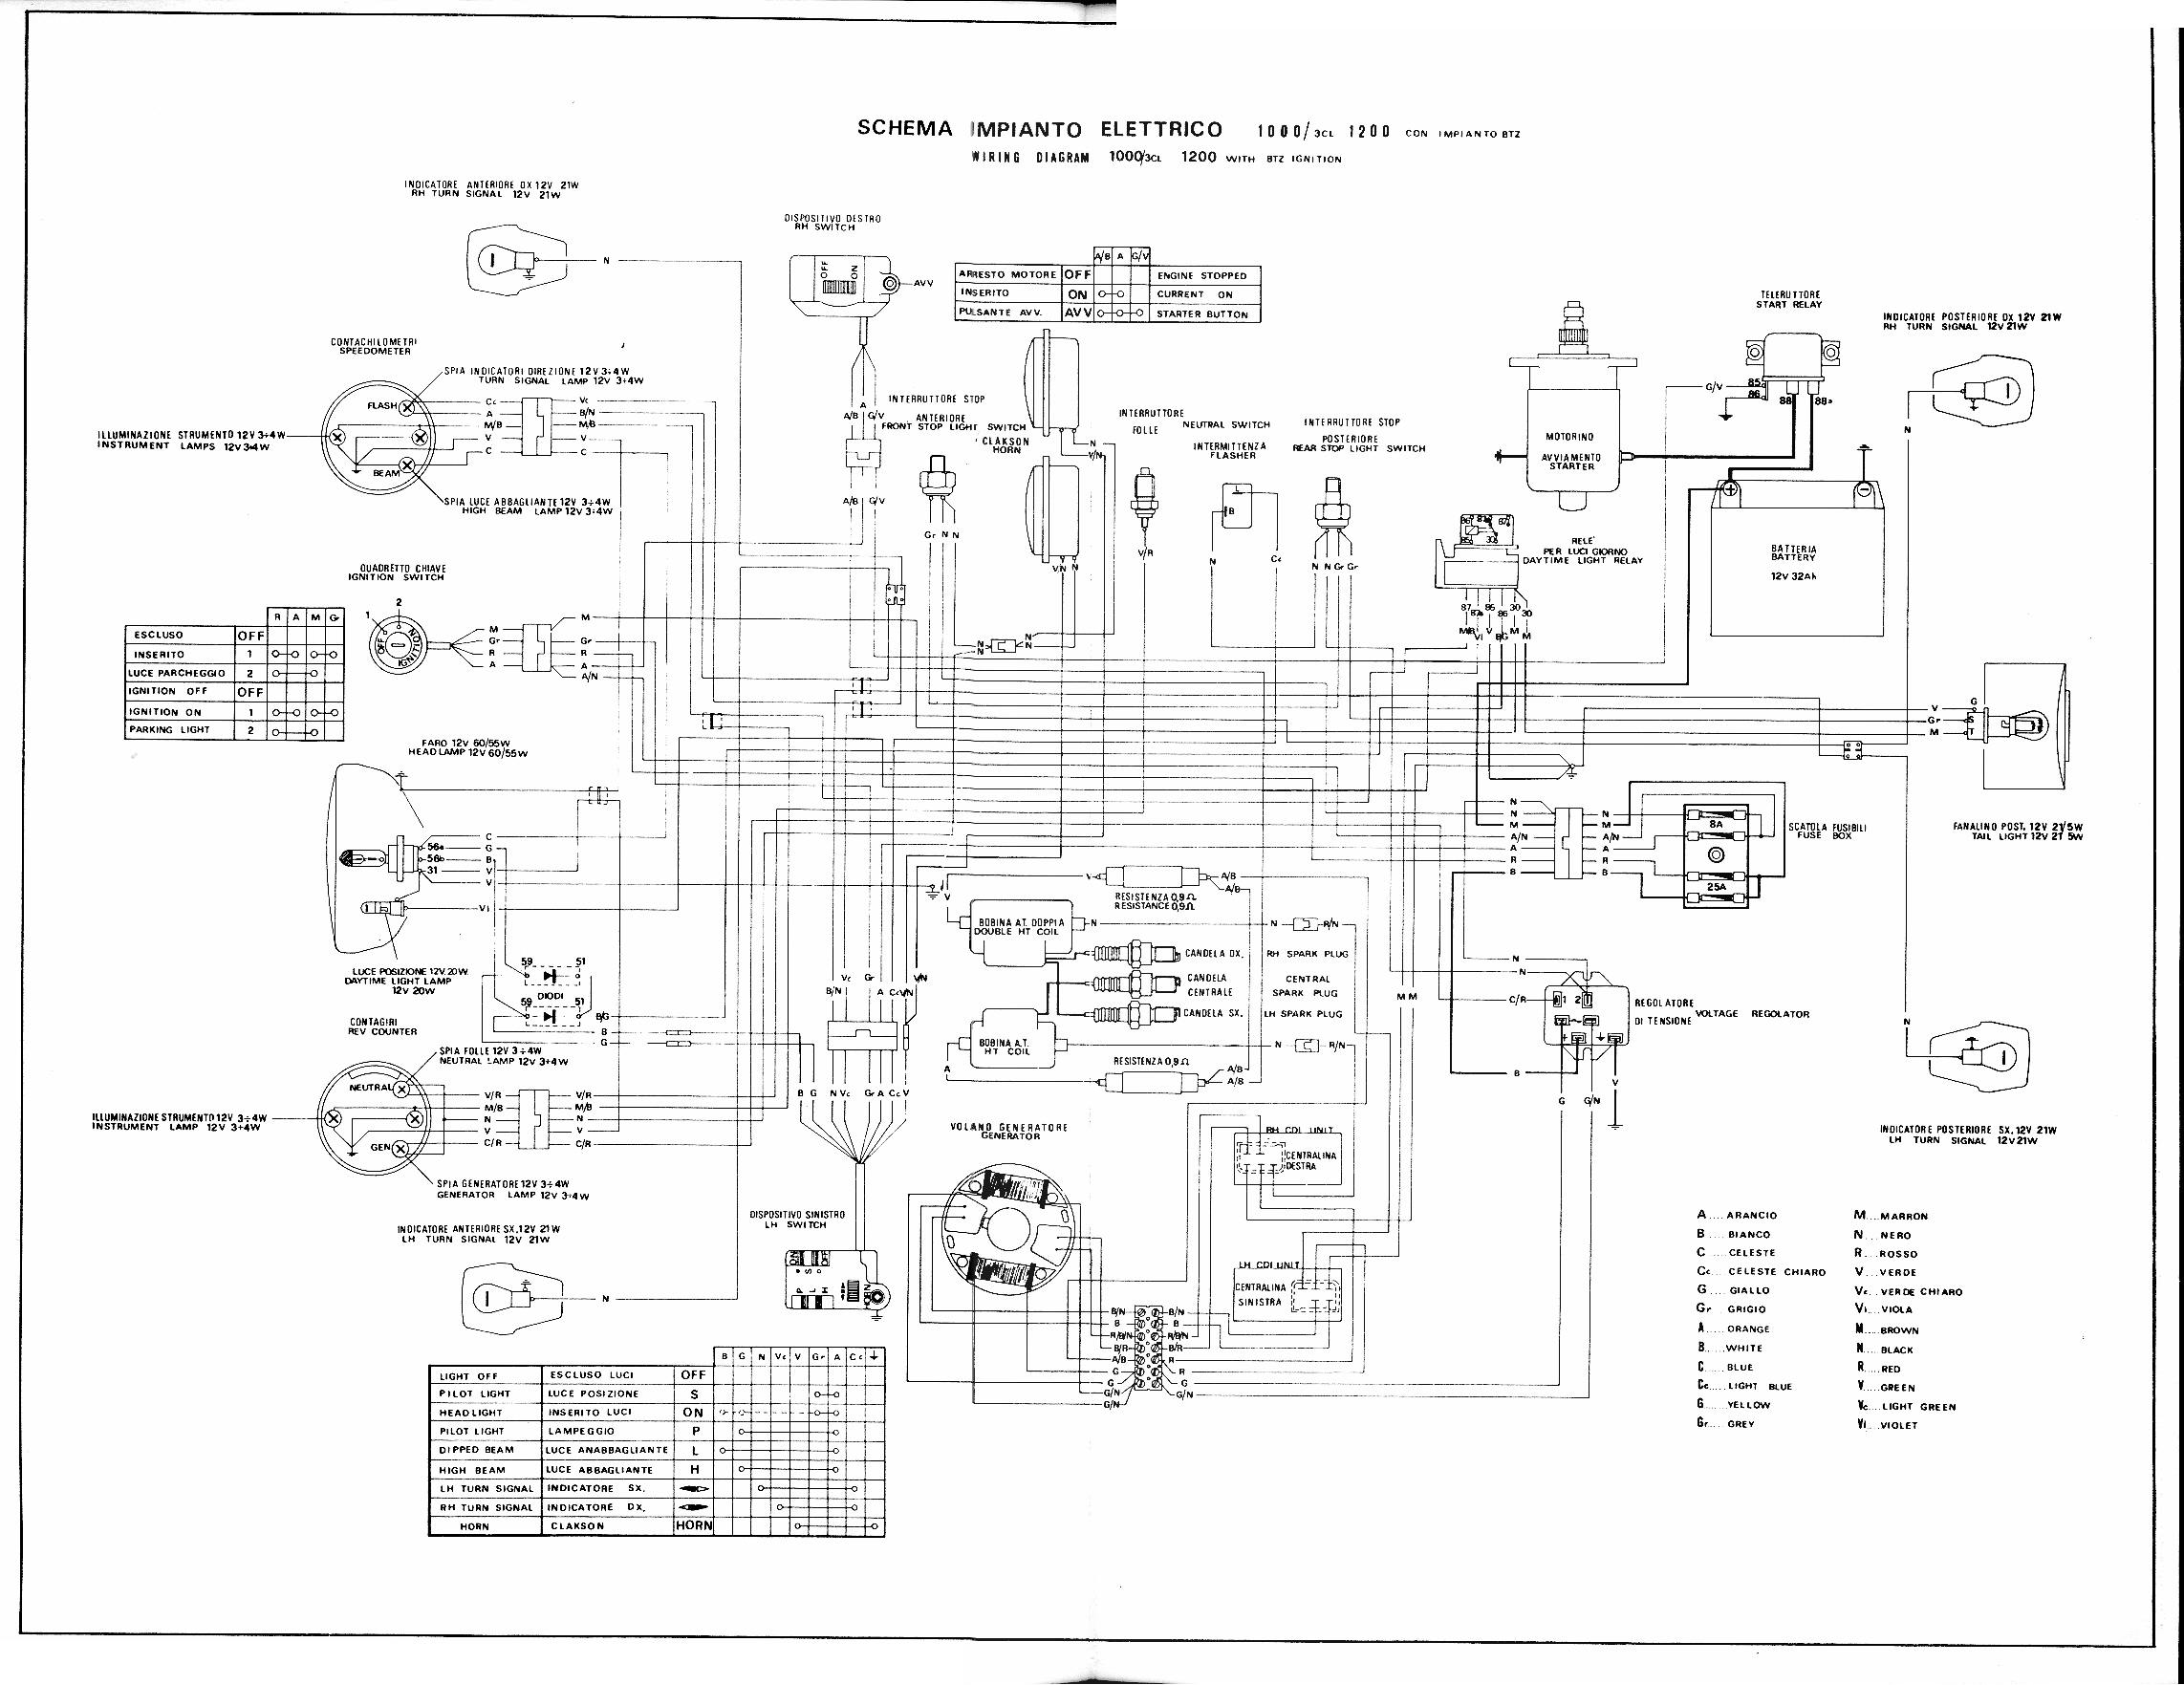 Laverda Motorcycle Manuals Pdf Wiring Diagrams Fault Codes Electrical Triumph Tiger Explorer Download 1000 1200 Diagram